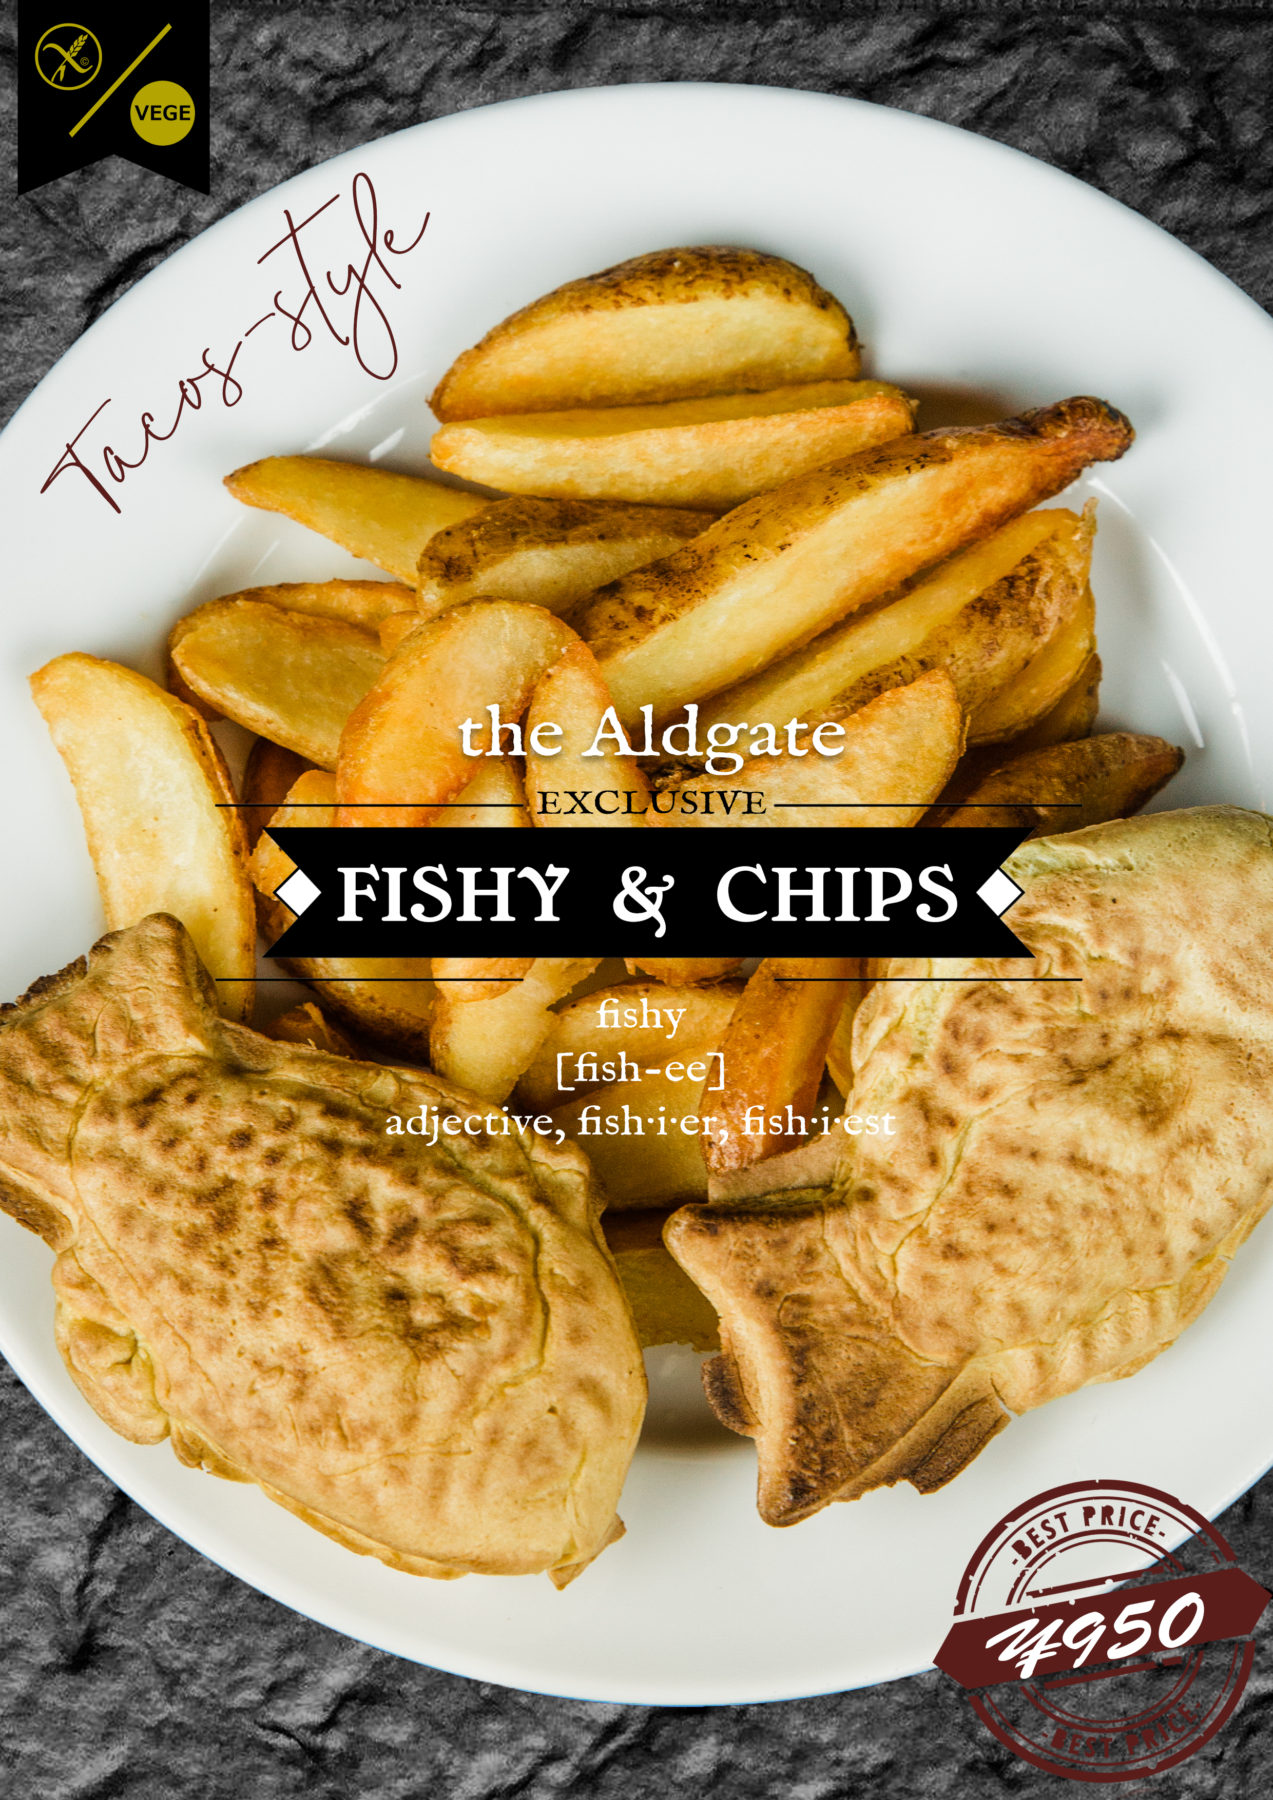 Fishy & Chips - the Aldgate Shibya